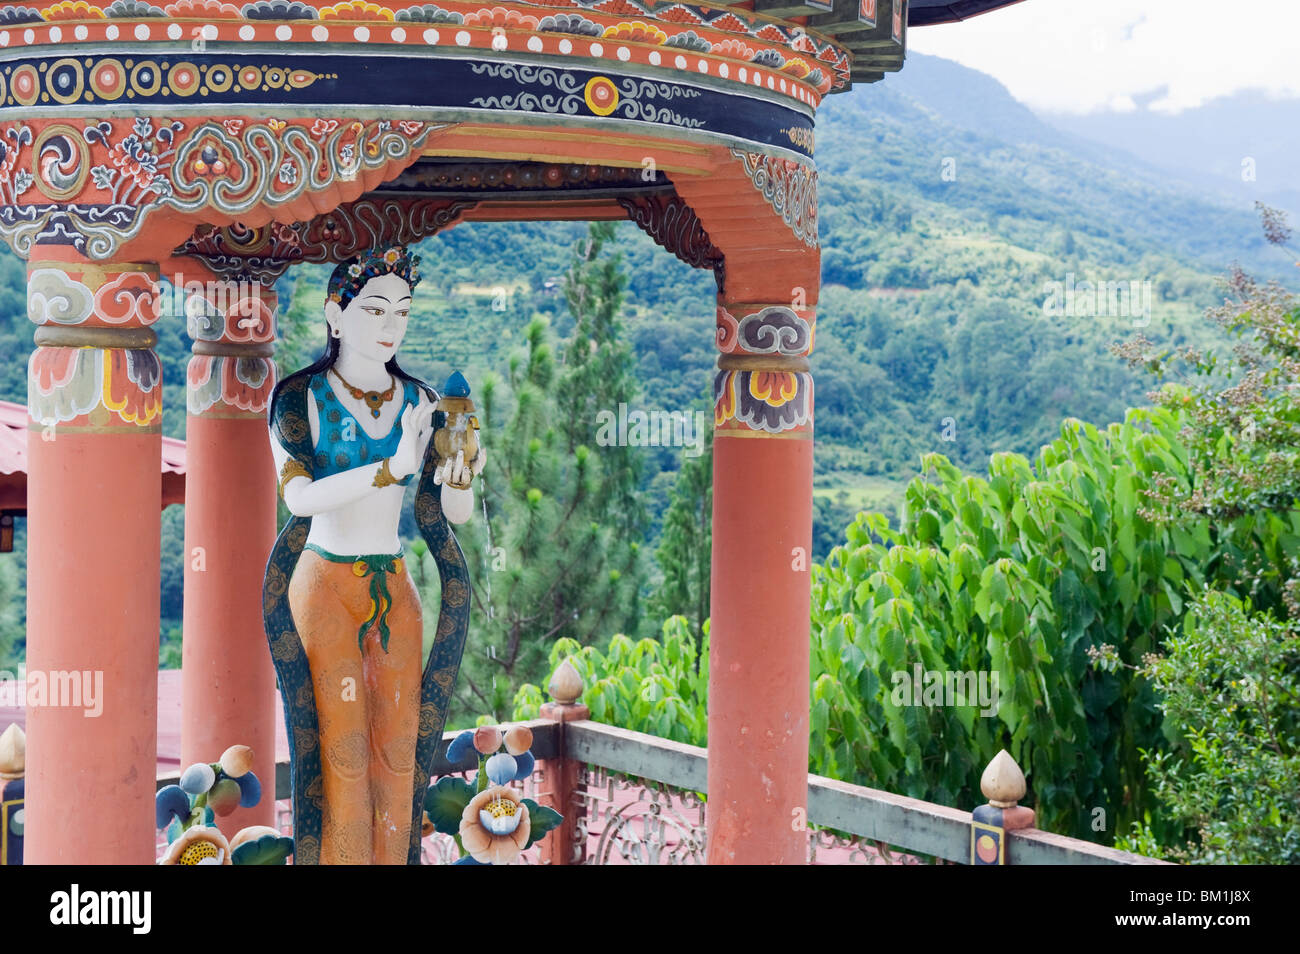 Statue at a water fountain, Khamsum Yuelley Namgyal Chorten built in 1999, Punakha, Bhutan, Asia - Stock Image